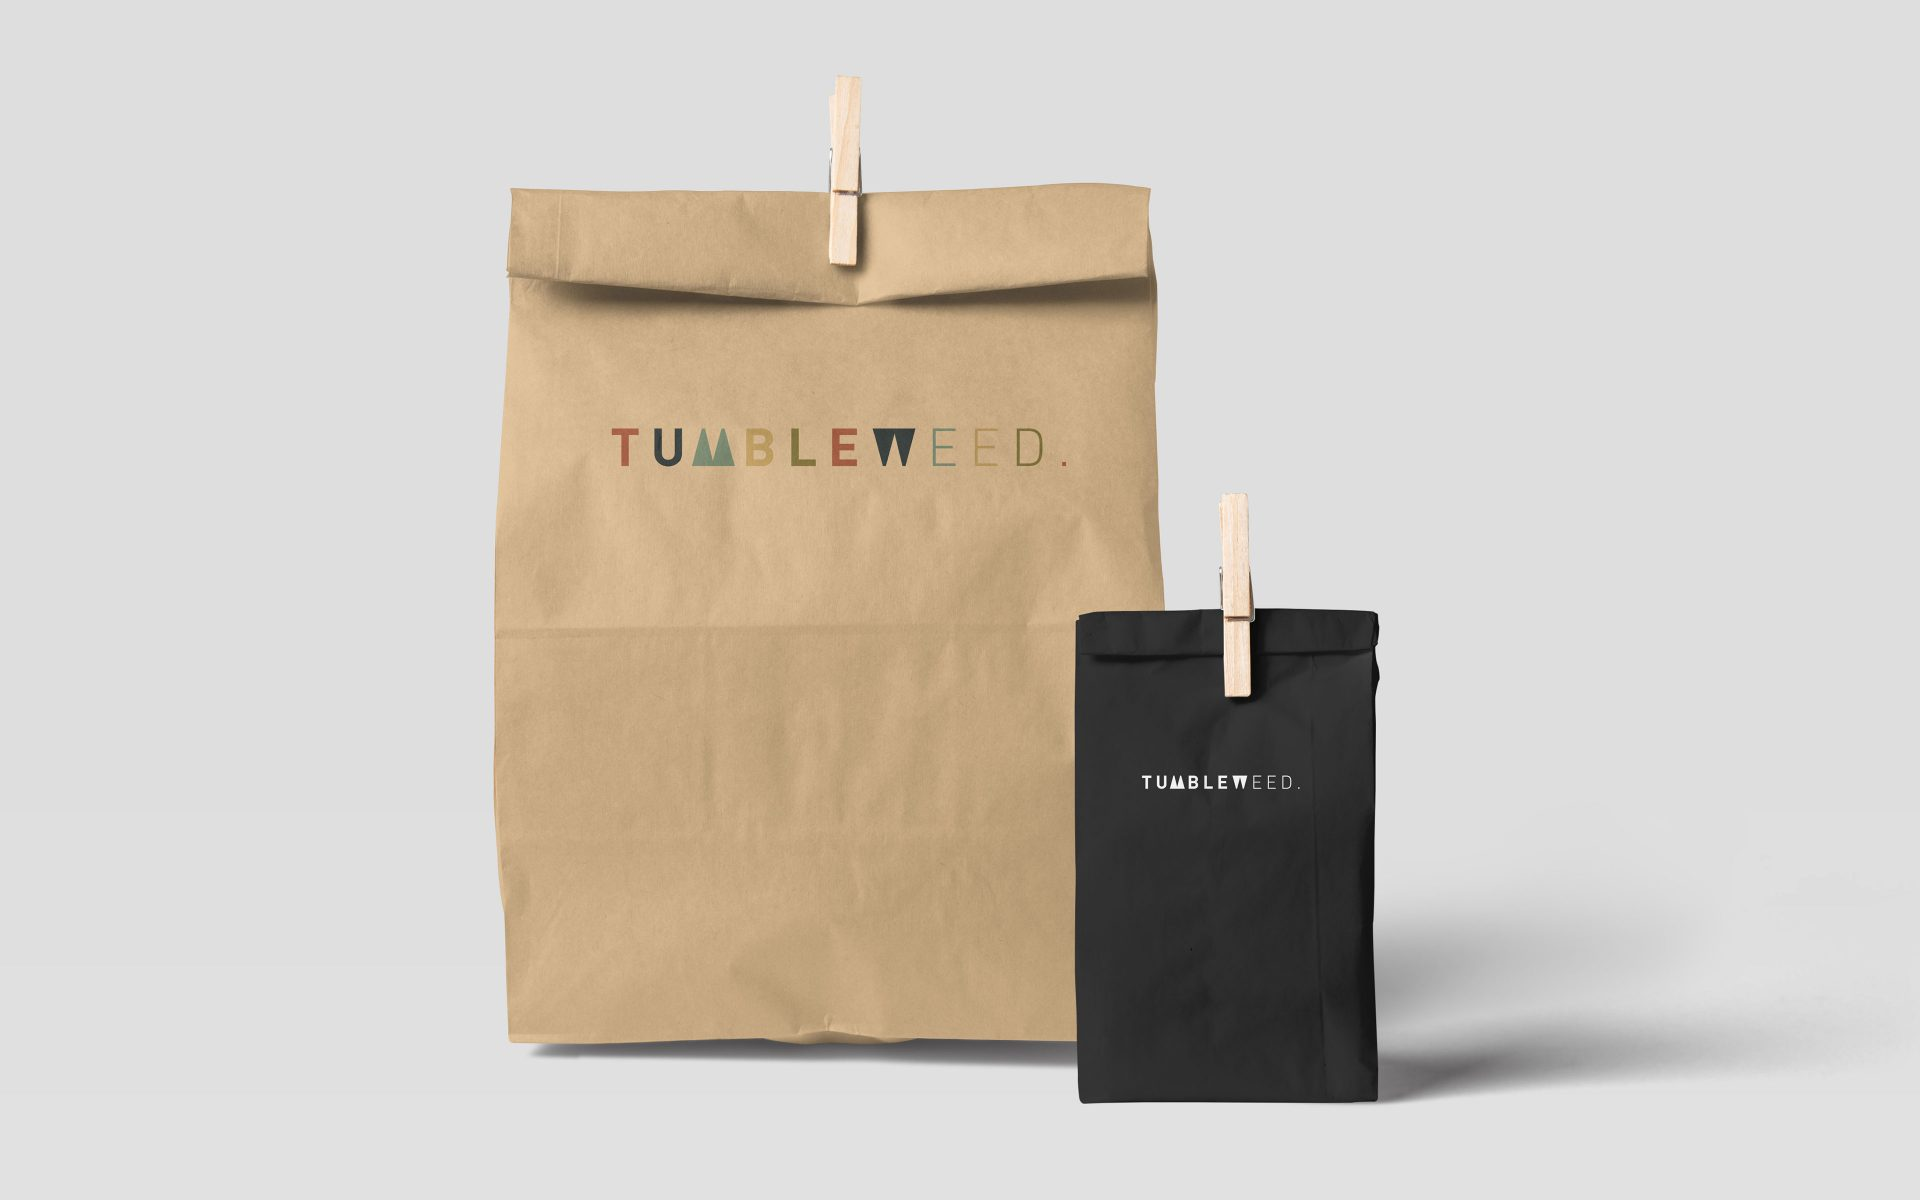 Tumbleweed NZ logo brand creative on take away recycled paper bag by DIFFER